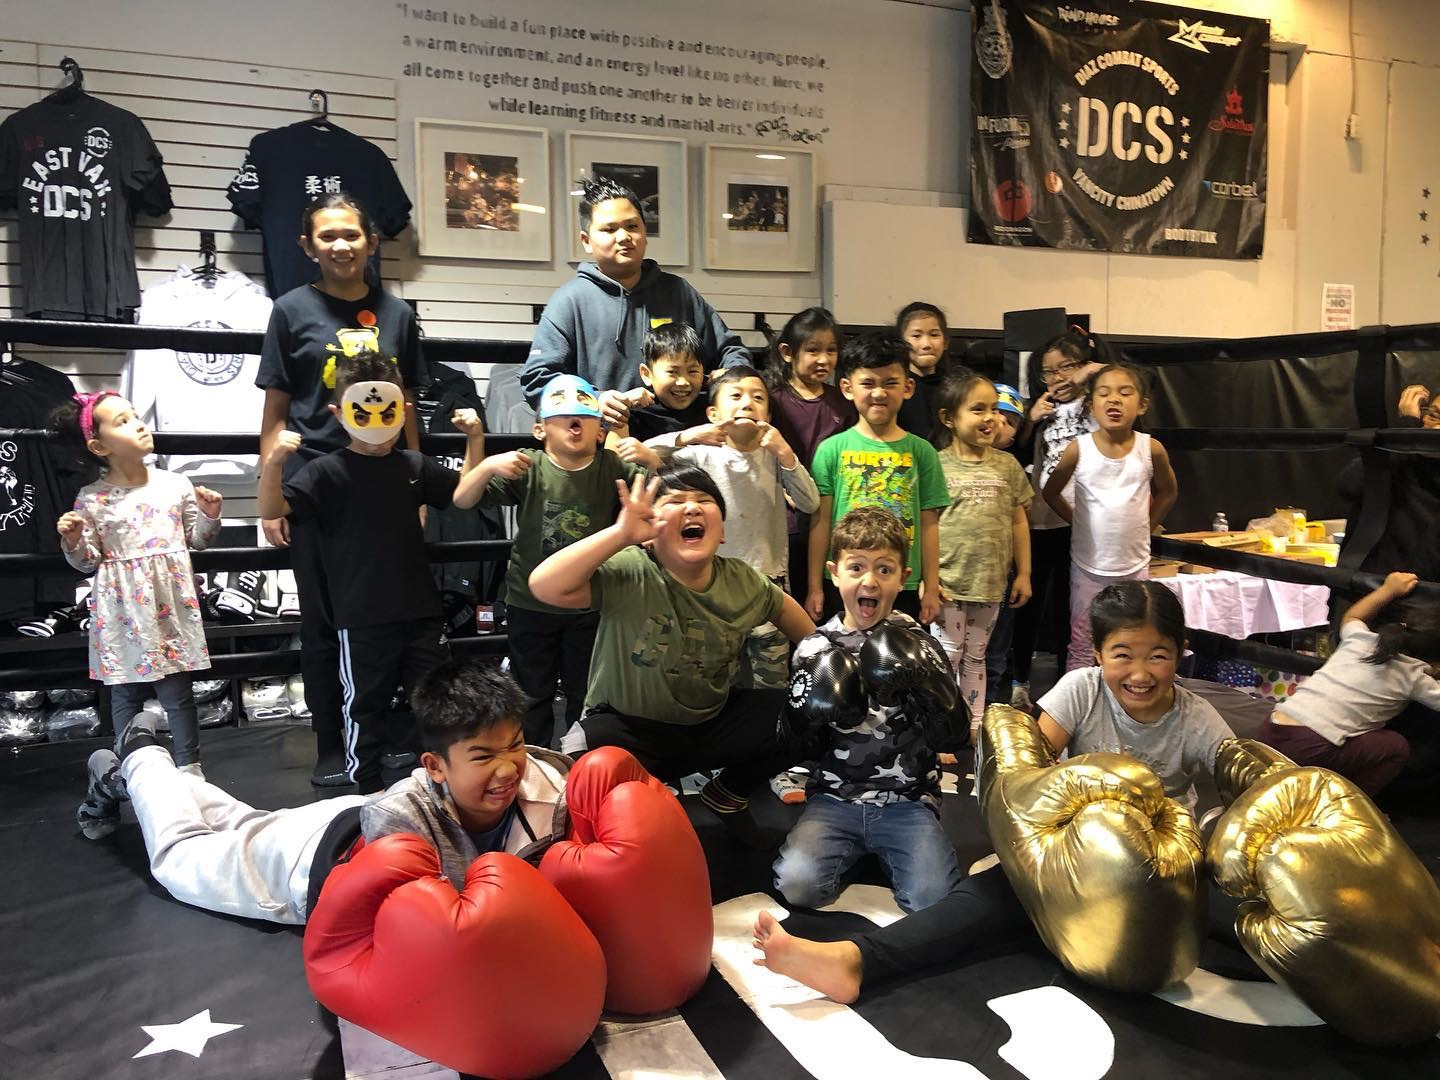 Kids kickboxing Vancouver is fun